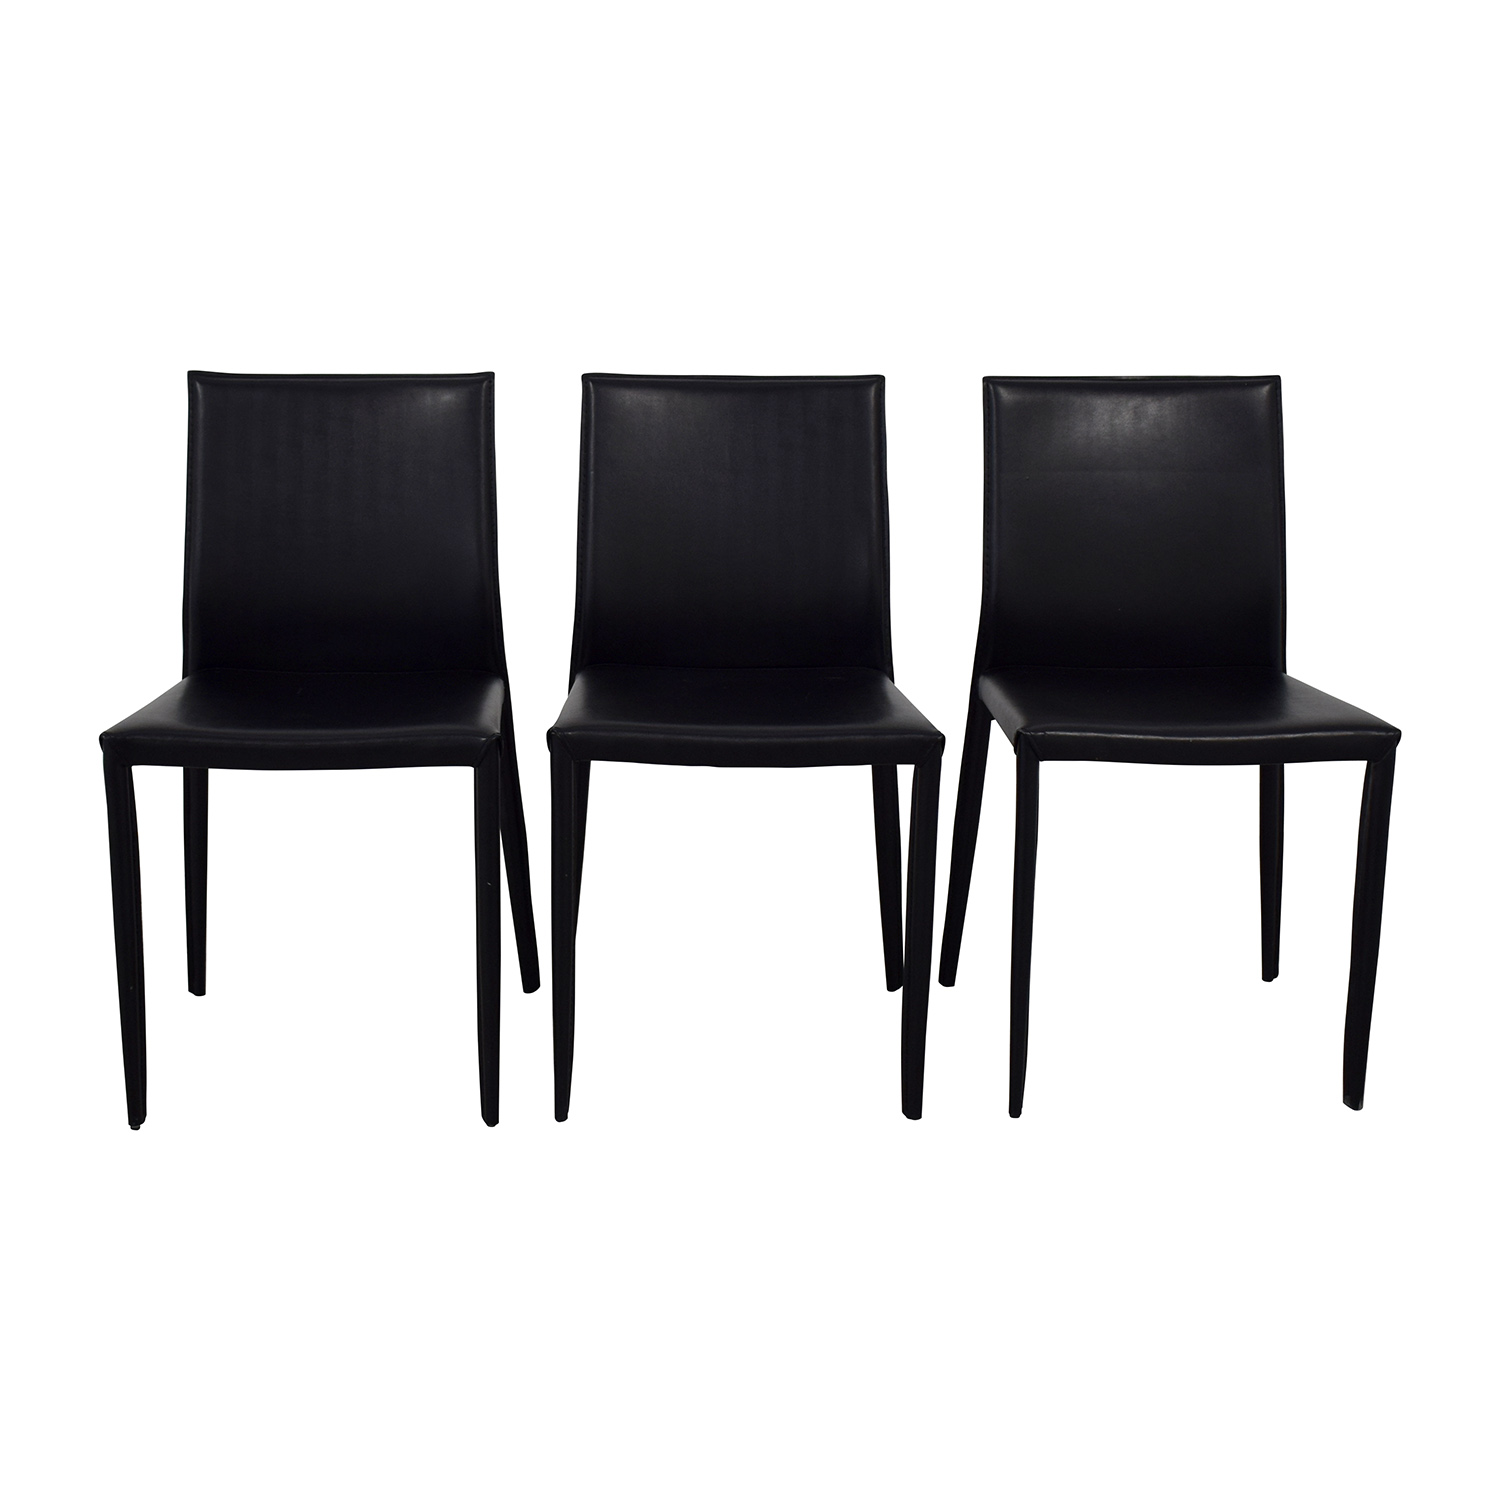 Room & Board Modern Black Dining Chairs / Dining Chairs